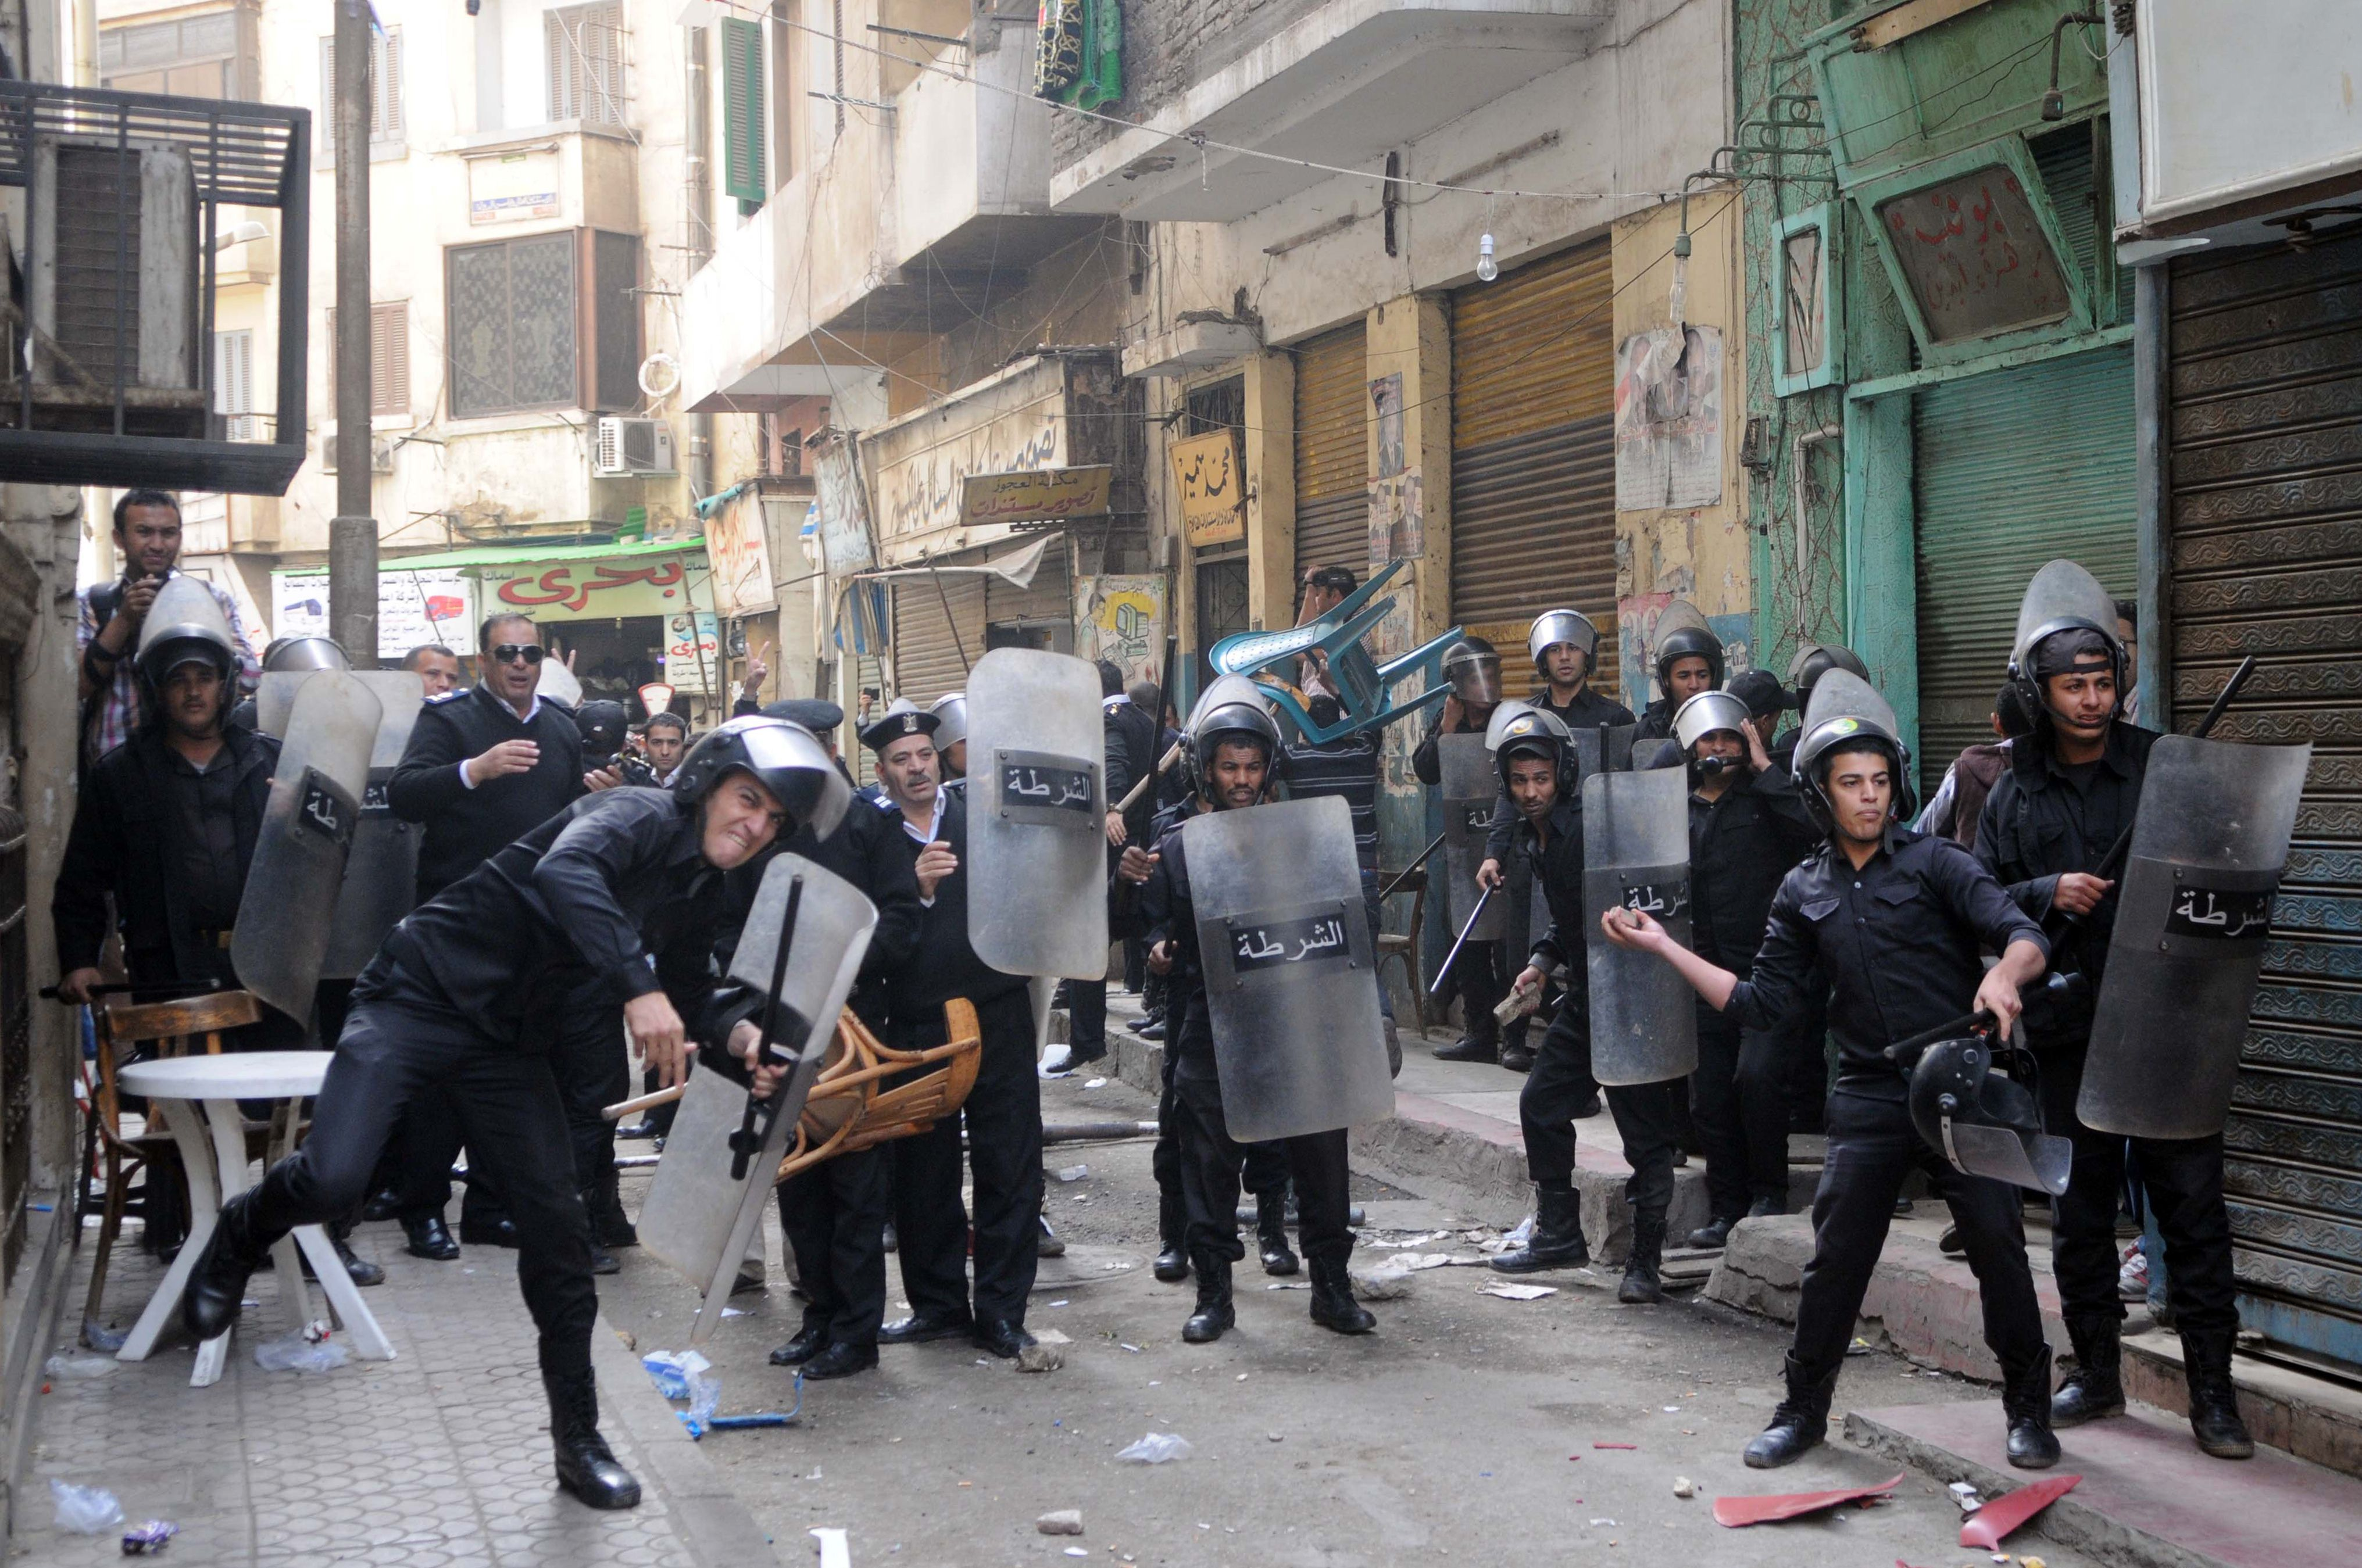 Egyptian riot policemen throw stones during clashes with protesters who gathered in support of a prominent secular activist who turned himself after being ordered detained for holding a demonstration against a new protest law, on November 30, 2013 in the Egyptian capital, Cairo. Ahmed Maher, founder of the April 6 movement, one of the main groups that spearheaded the 2011 revolt against long-time ruler Hosni Mubarak, arrived at a Cairo court surrounded by dozens of supporters who chanted slogans demanding the release of other detained activists.     (AFP PHOTO STR)